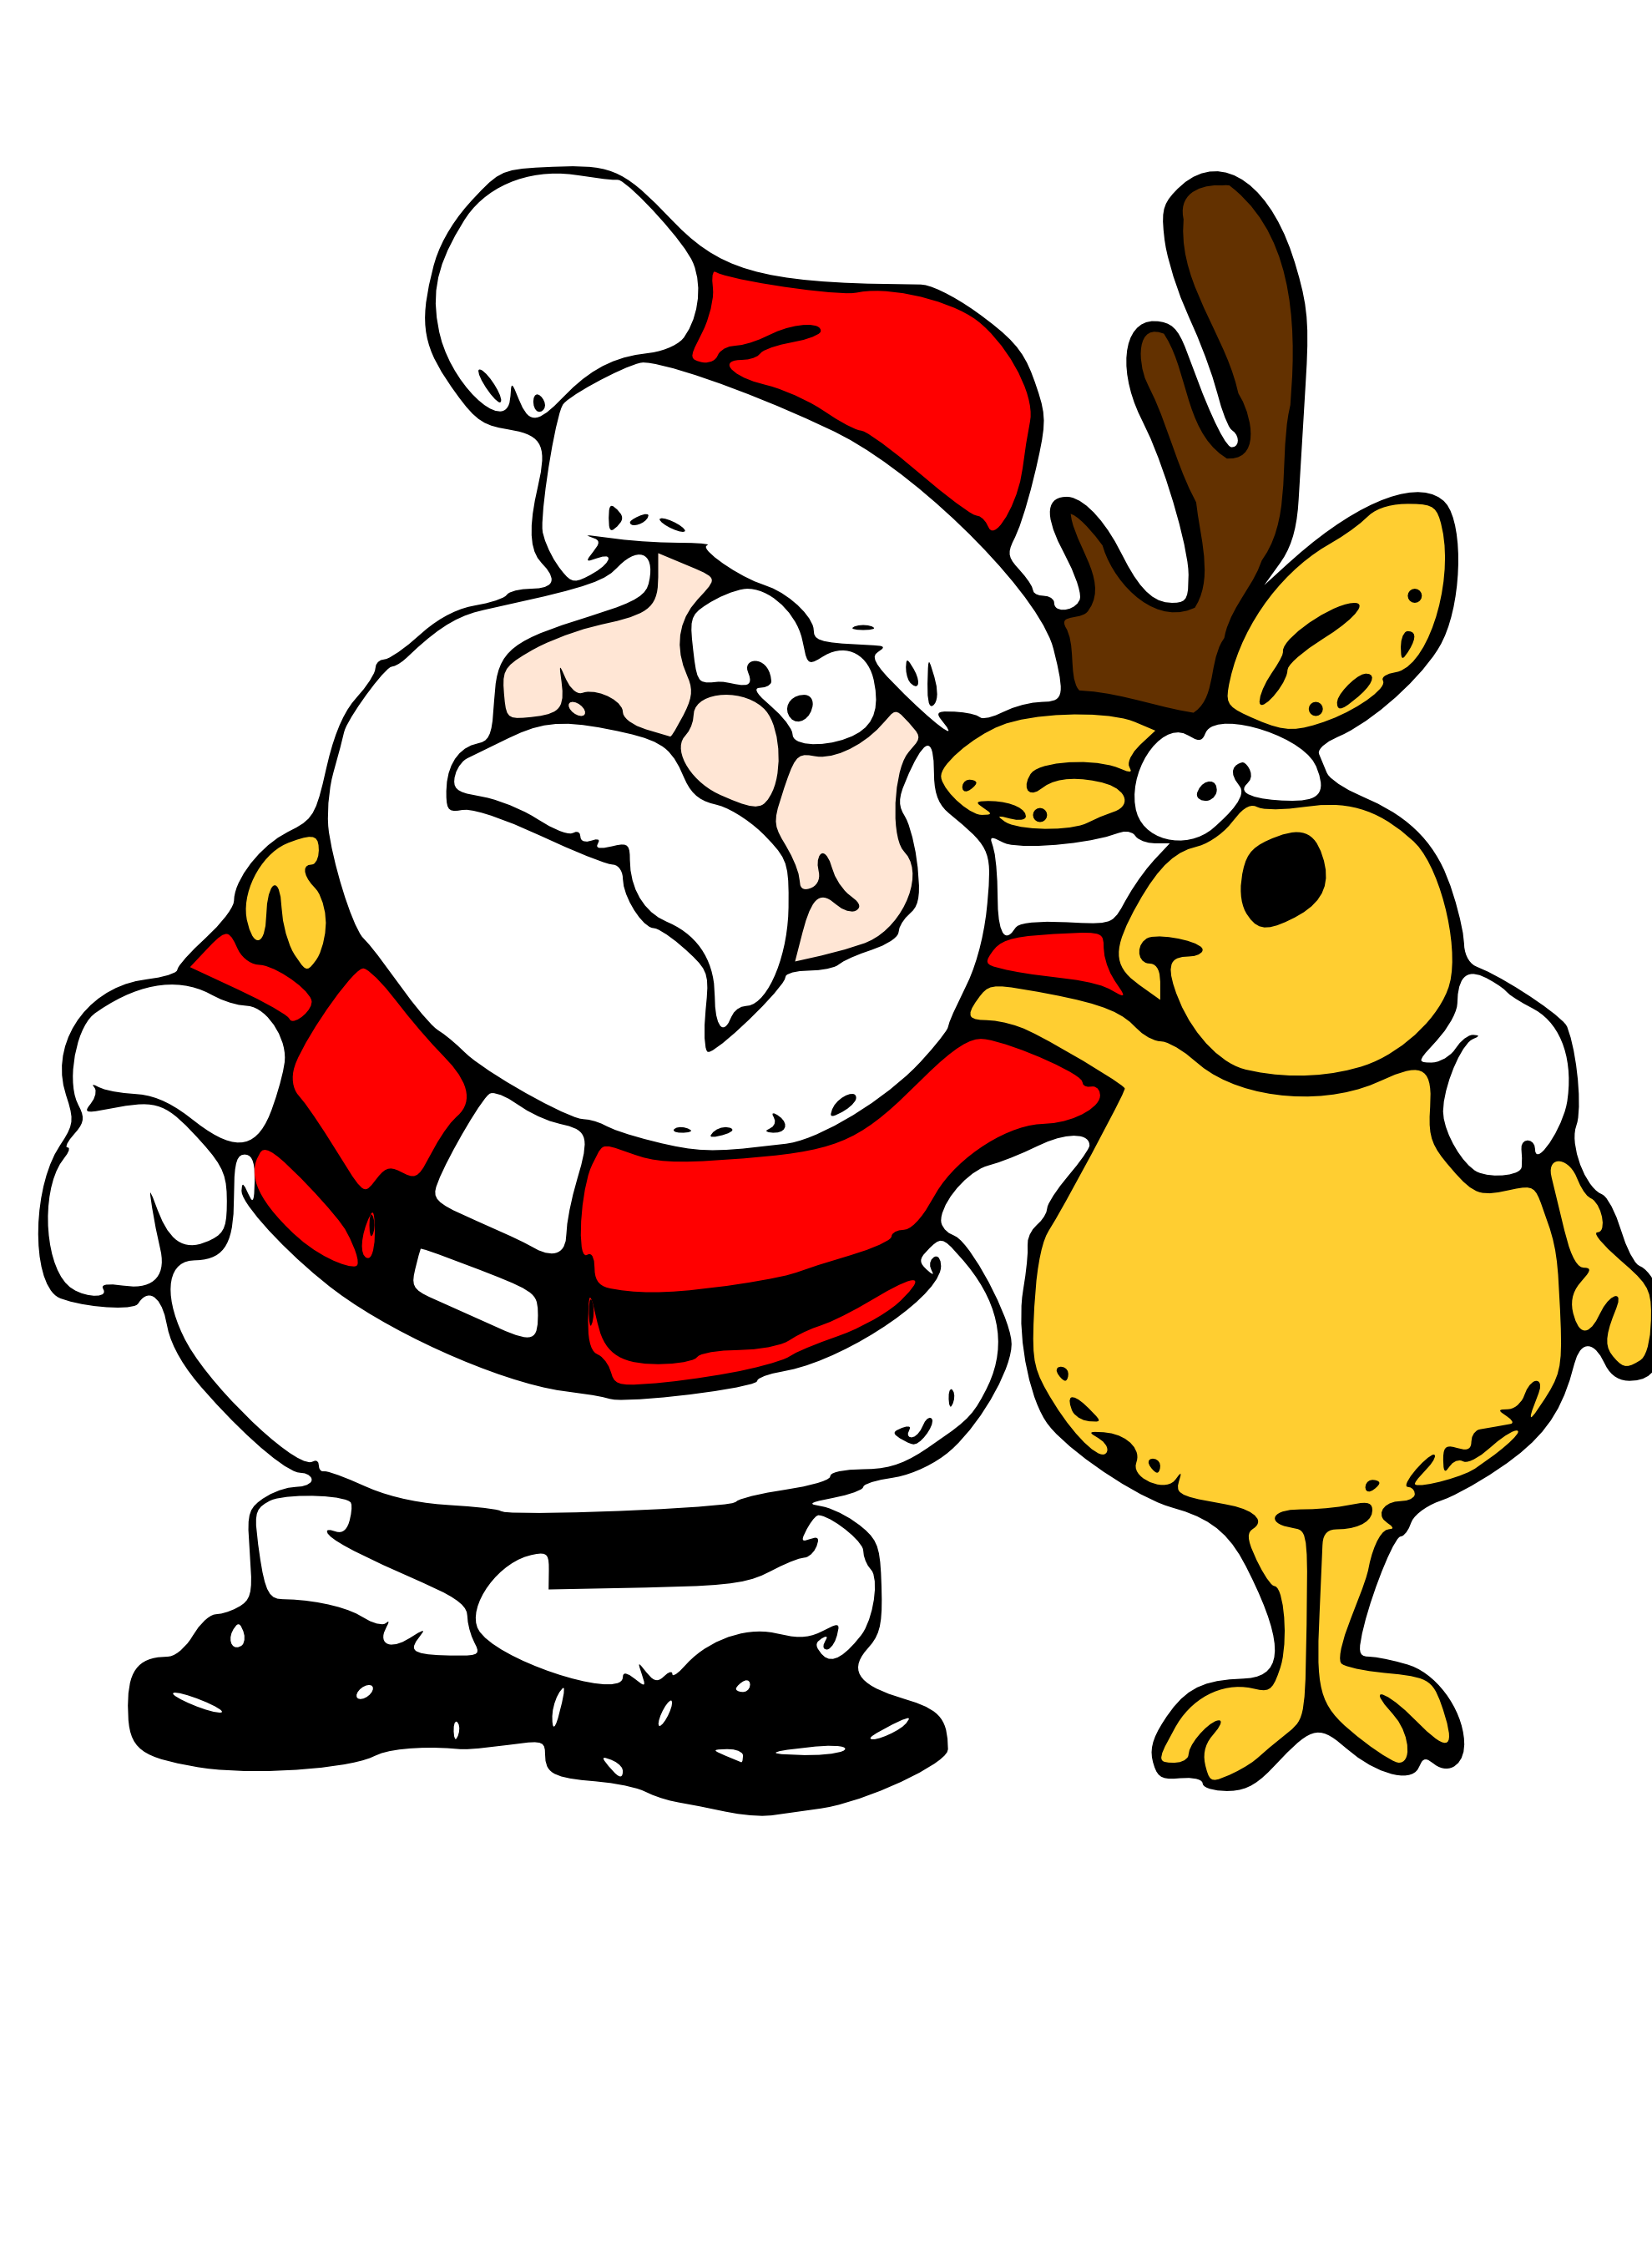 Clipart Of Santa And Reindeer.